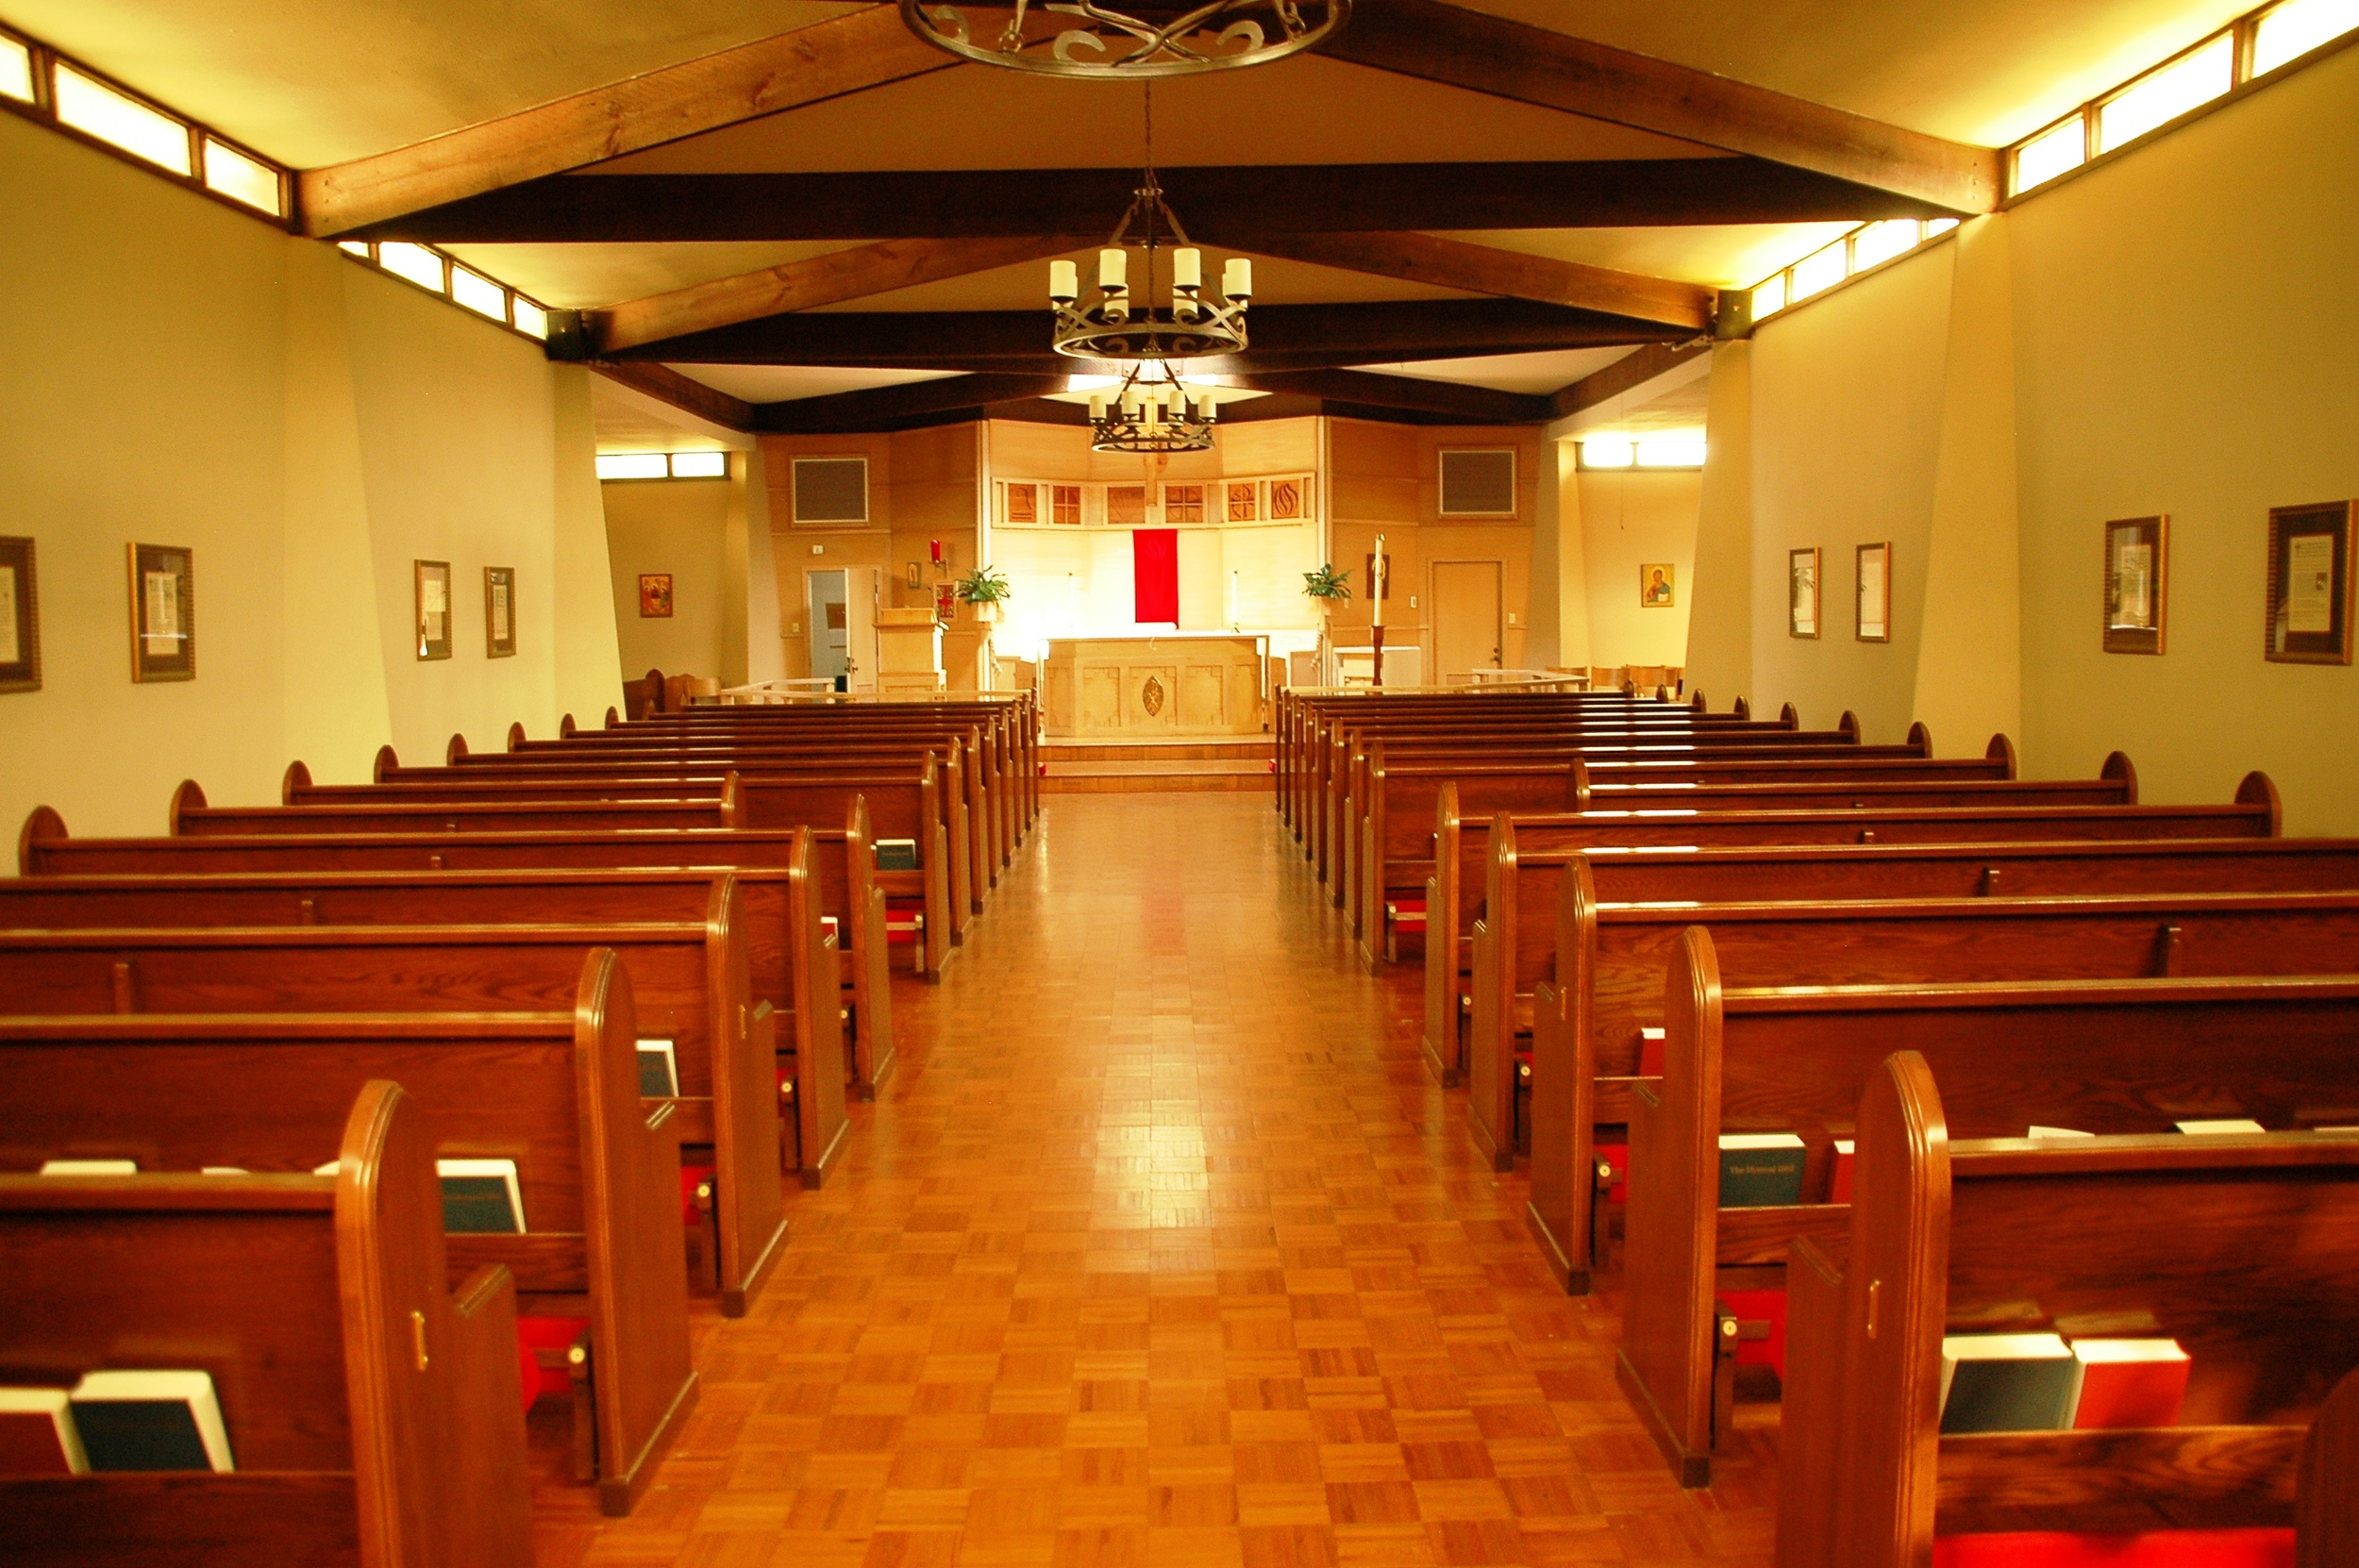 The Current Nave